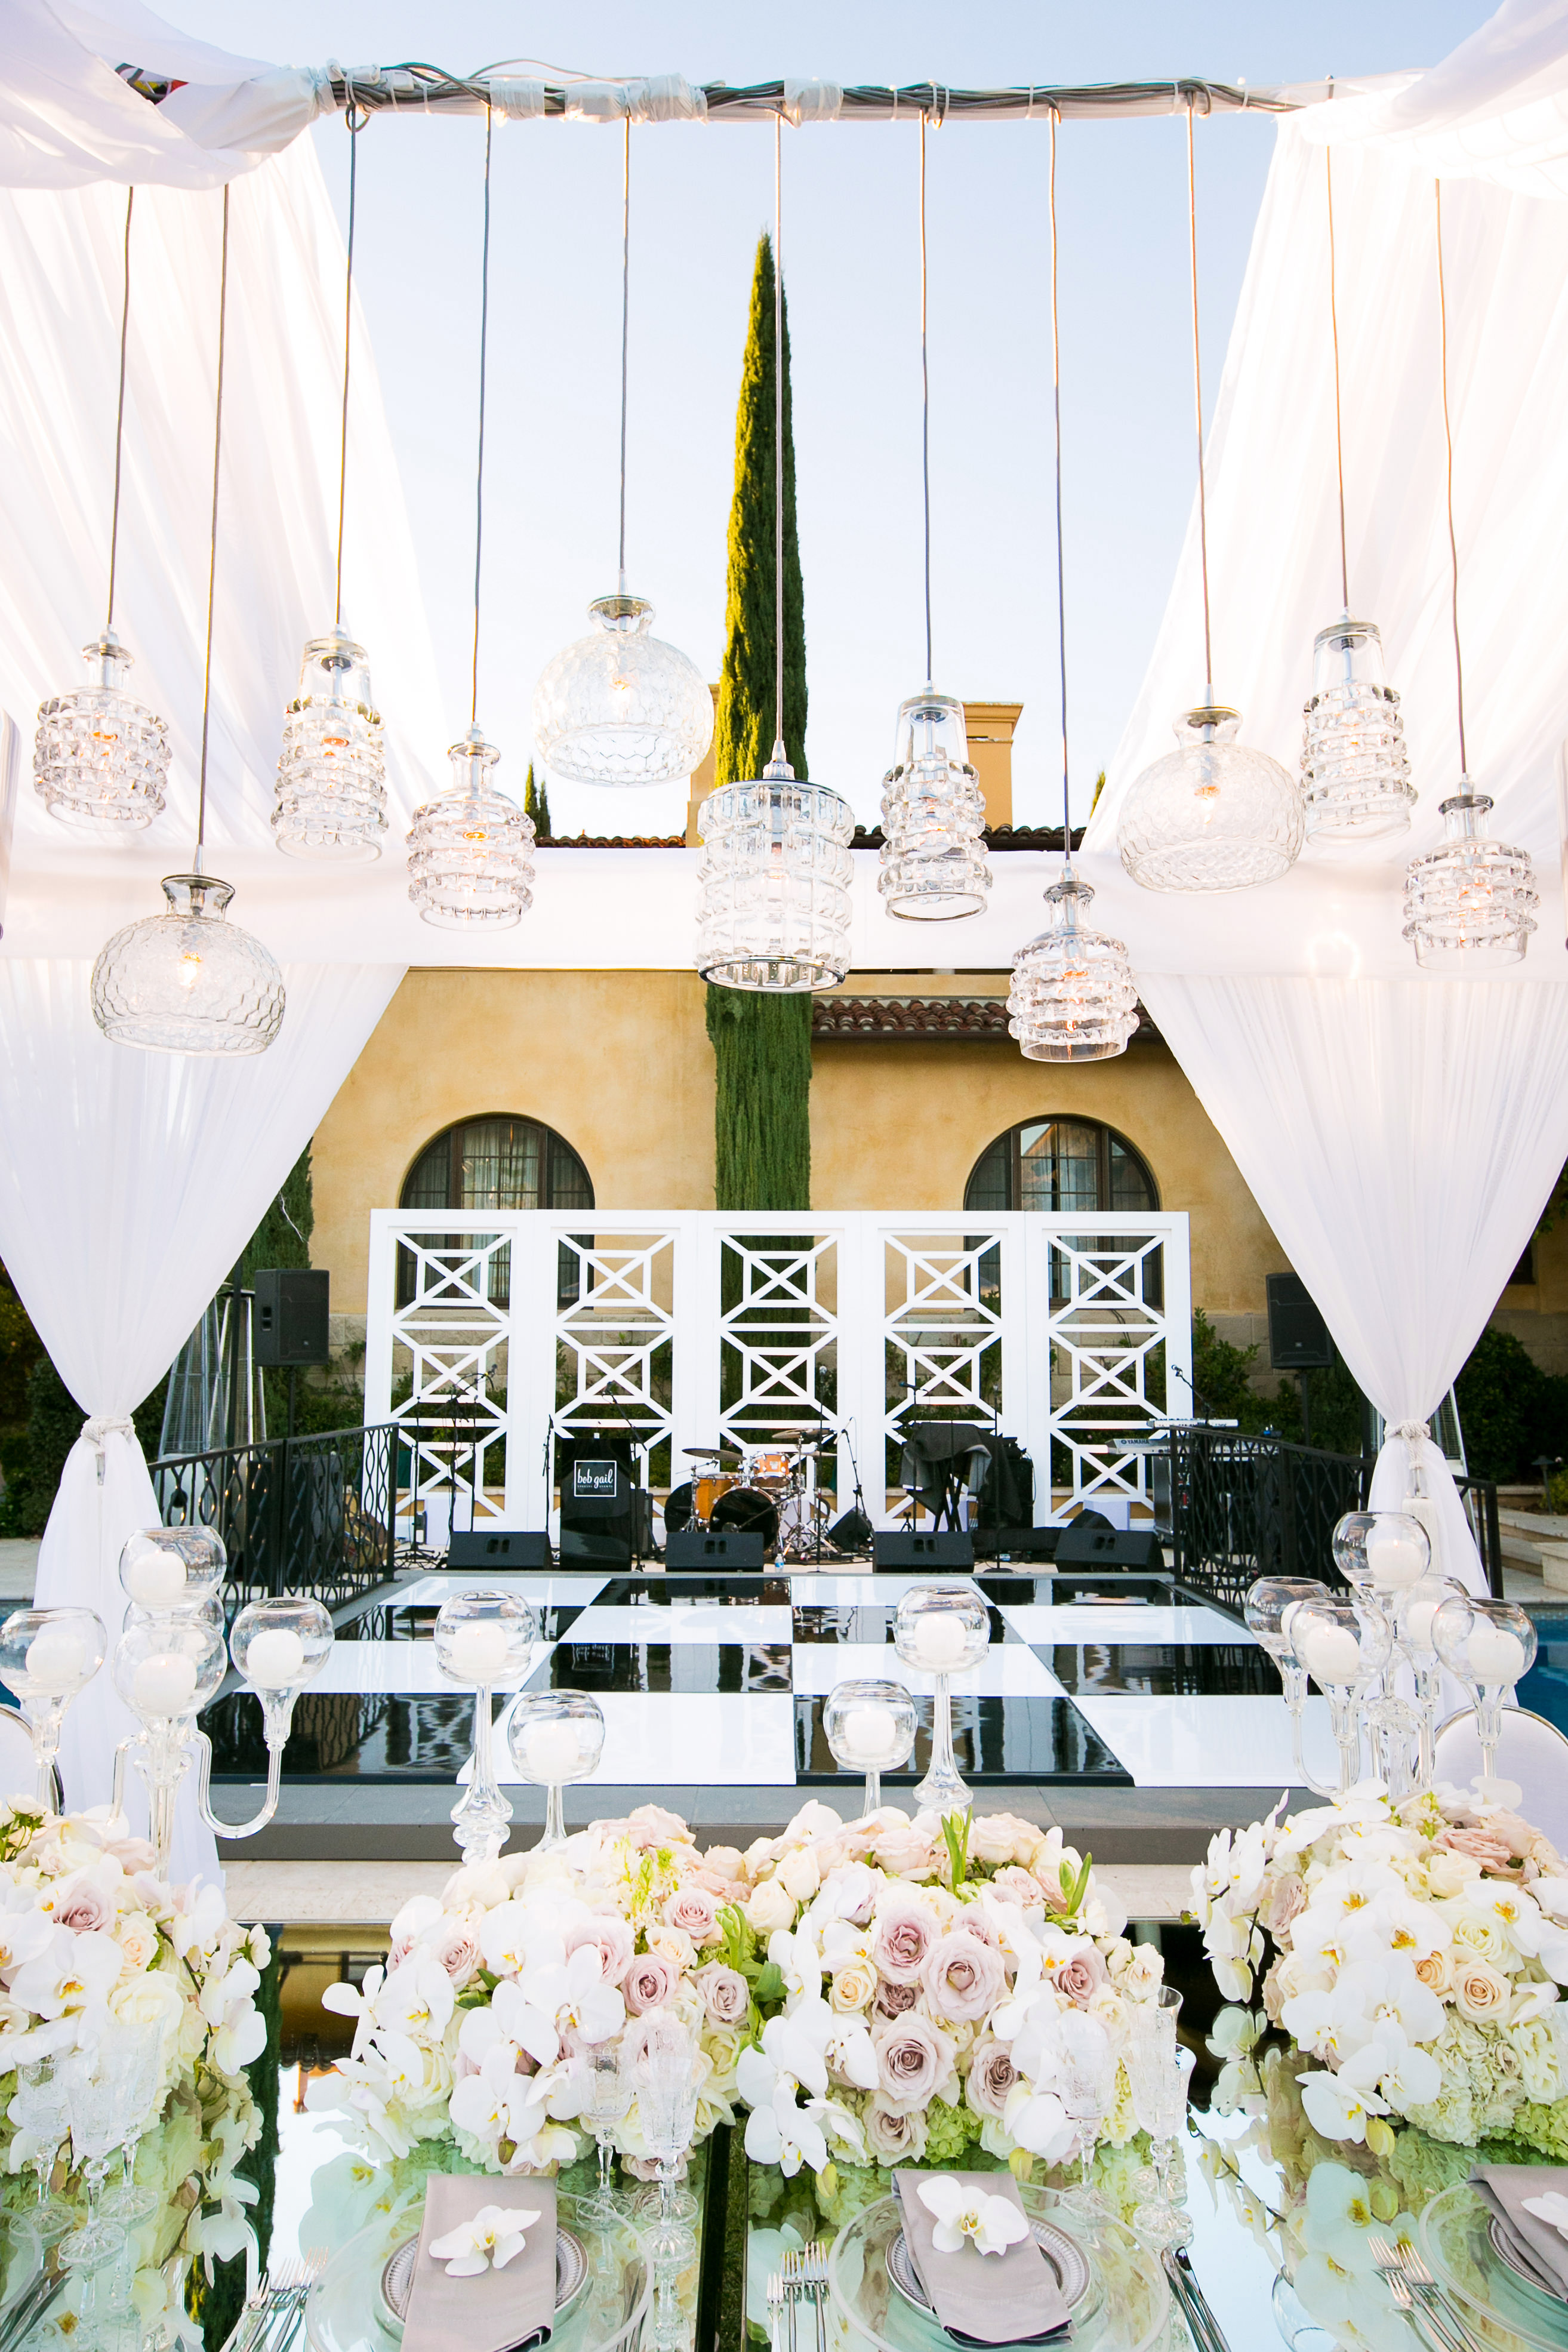 outdoor reception stage area with floral table setting and hanging lights